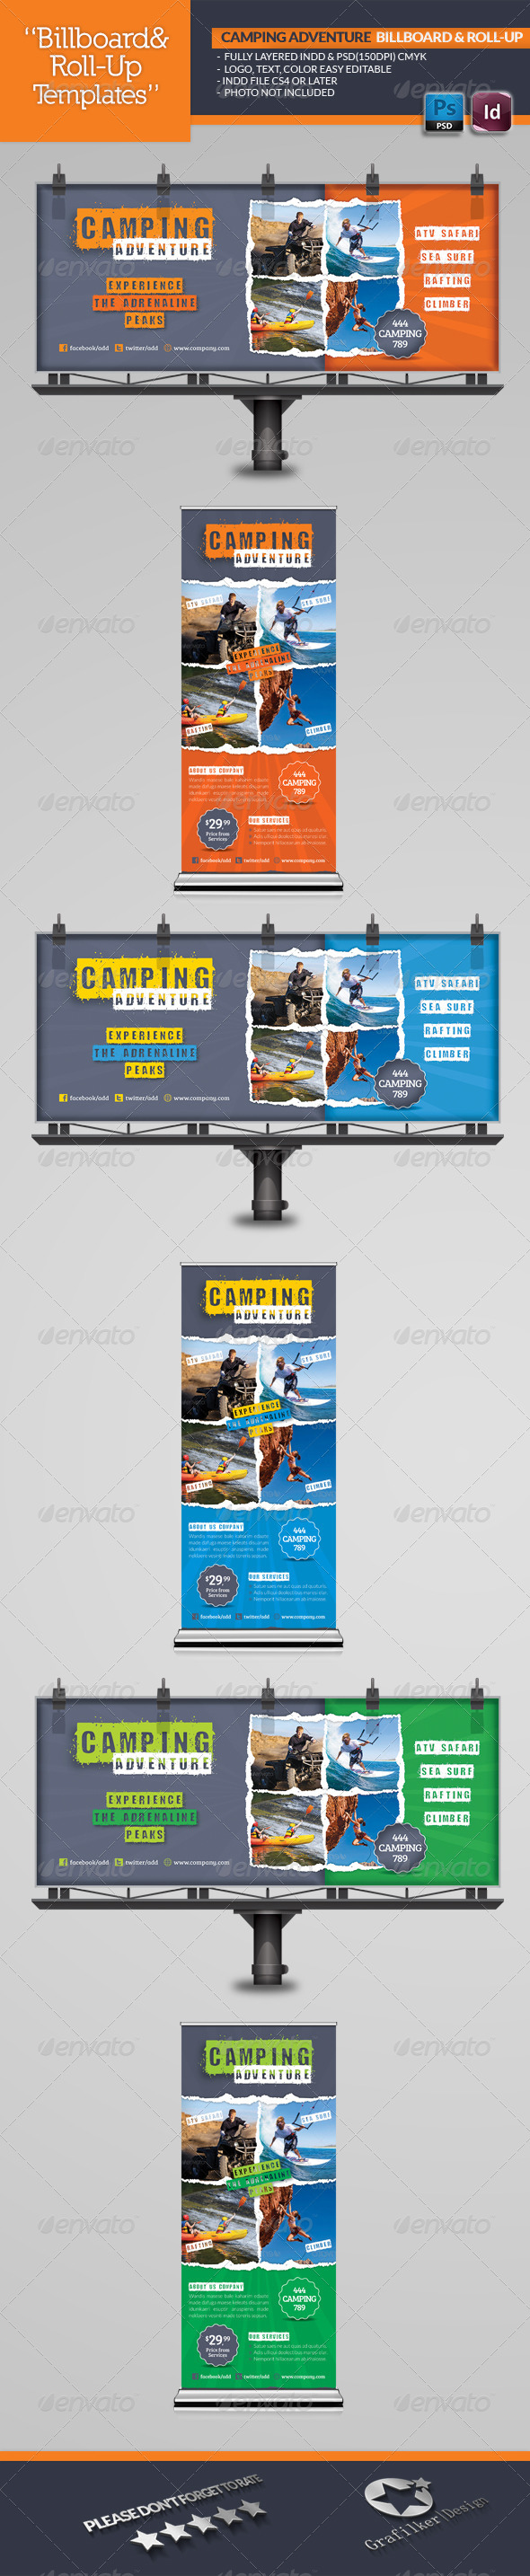 GraphicRiver Camping Adventure Billboard & Roll-Up Template 5244657